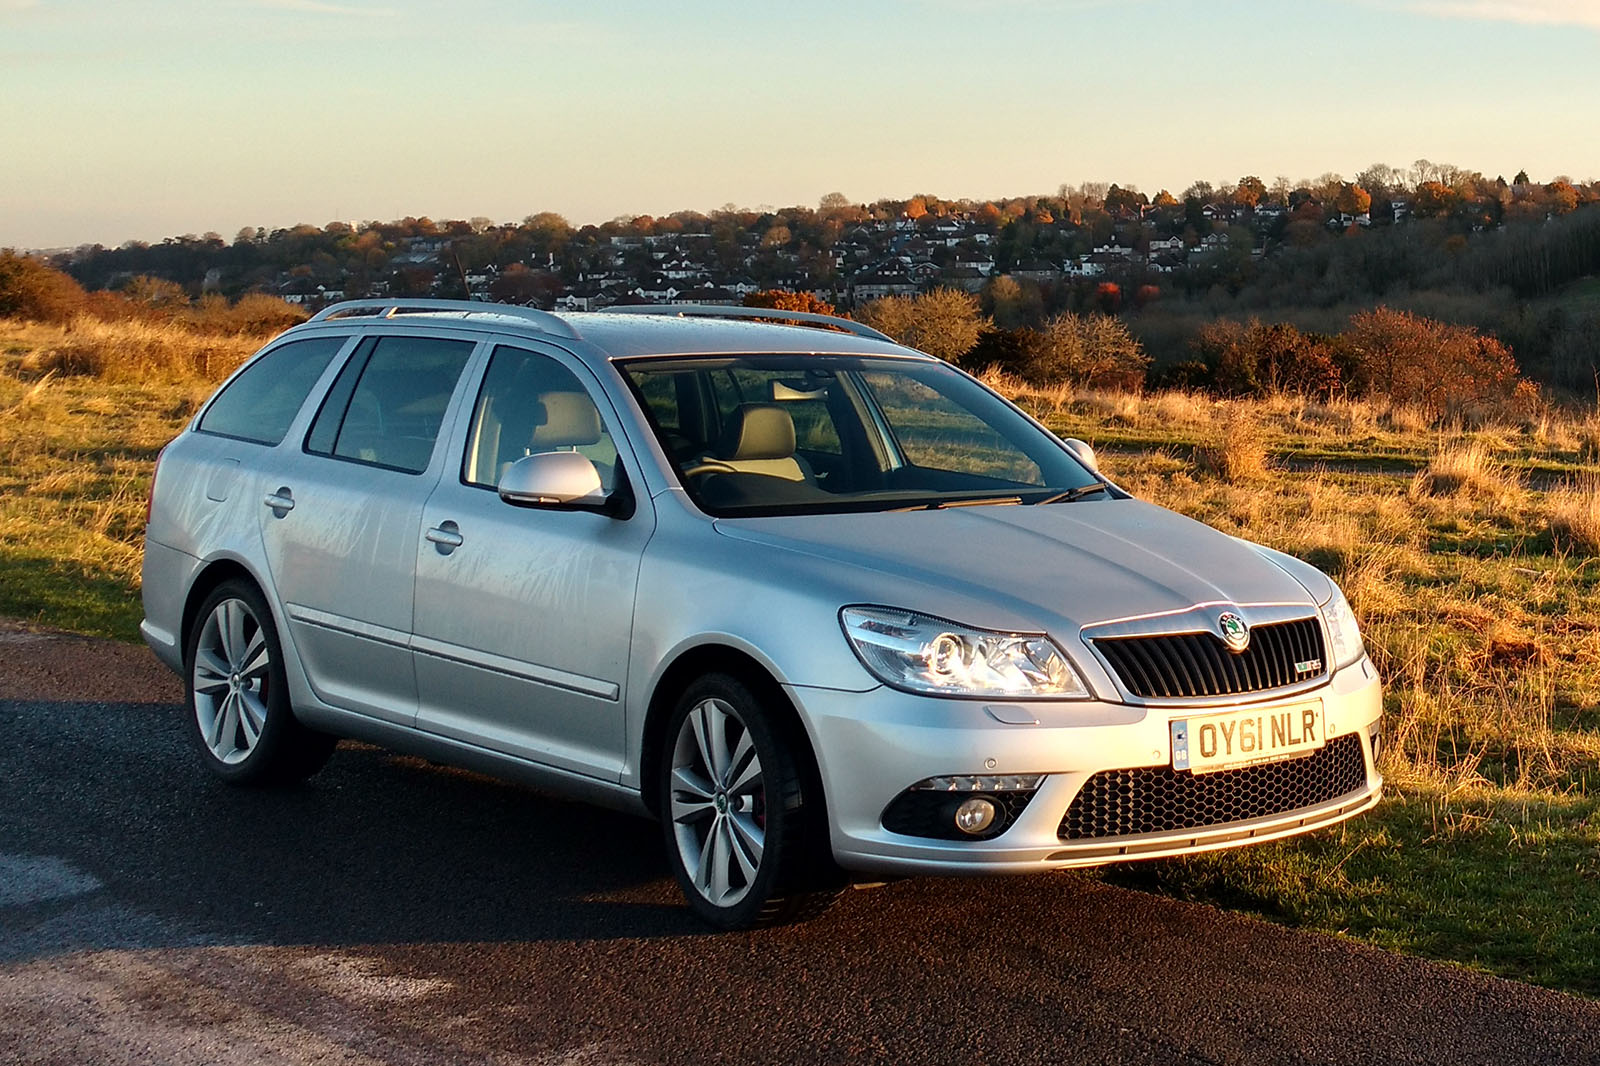 skoda octavia vrs long term test review final report autocar. Black Bedroom Furniture Sets. Home Design Ideas